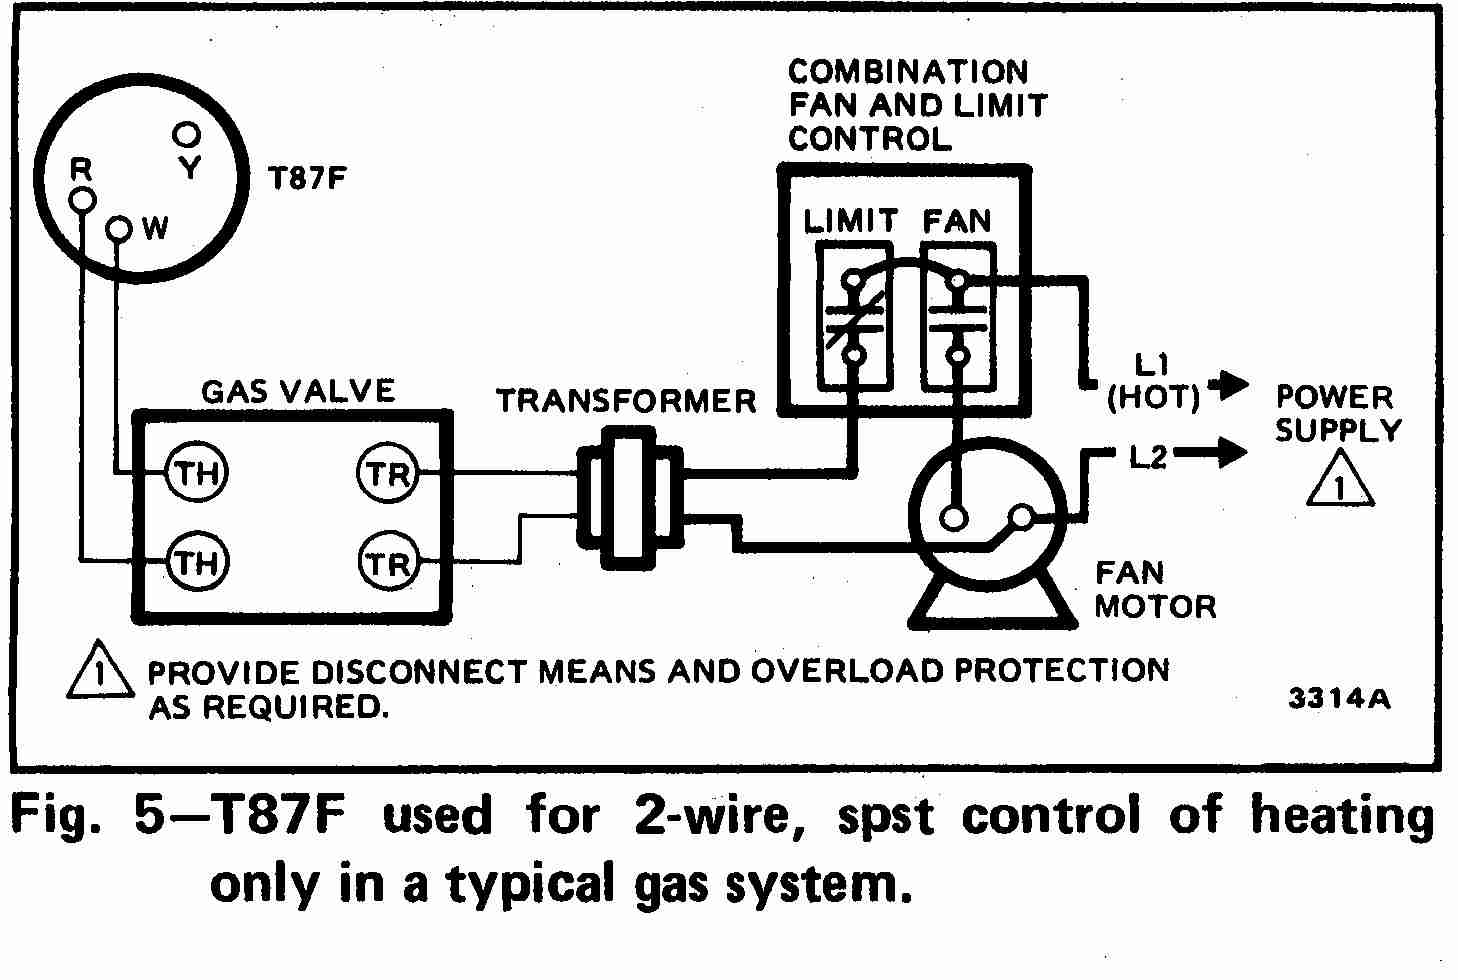 room thermostat wiring diagrams for hvac systems rh inspectapedia com hive heating controller wiring diagram Rocker Switch Wiring Diagram